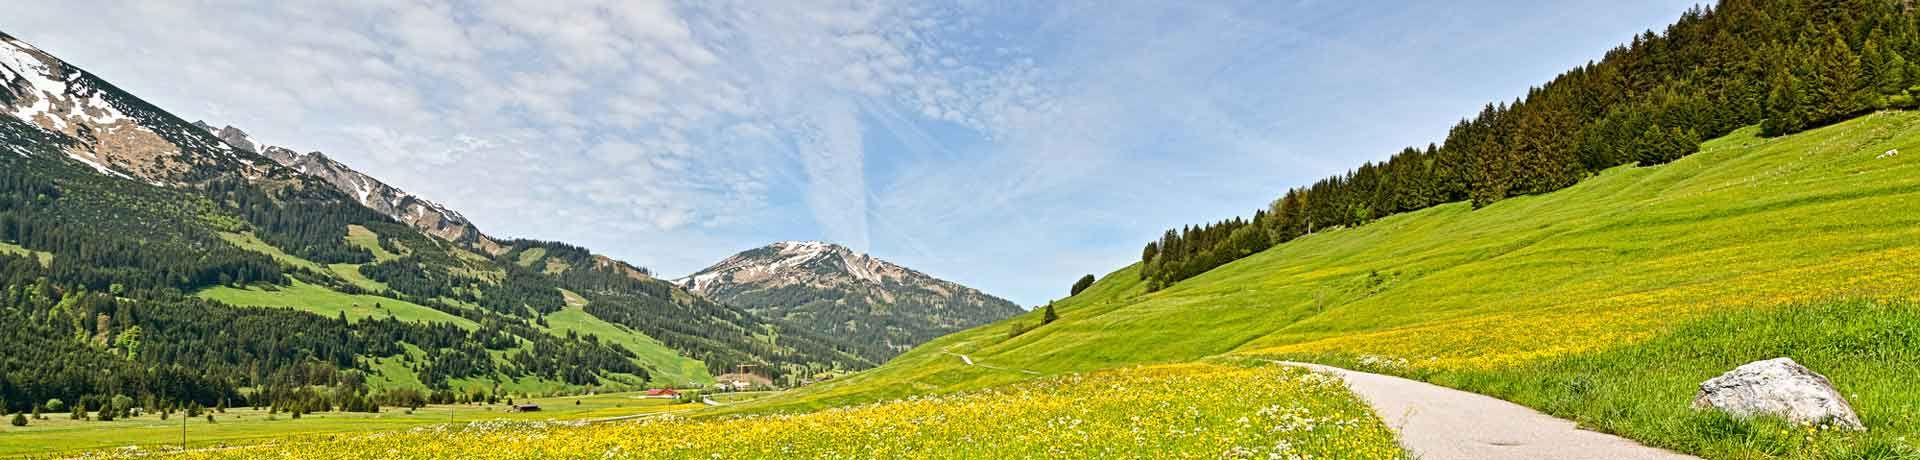 View of the springtime Tannheimer Tal, Tyrol